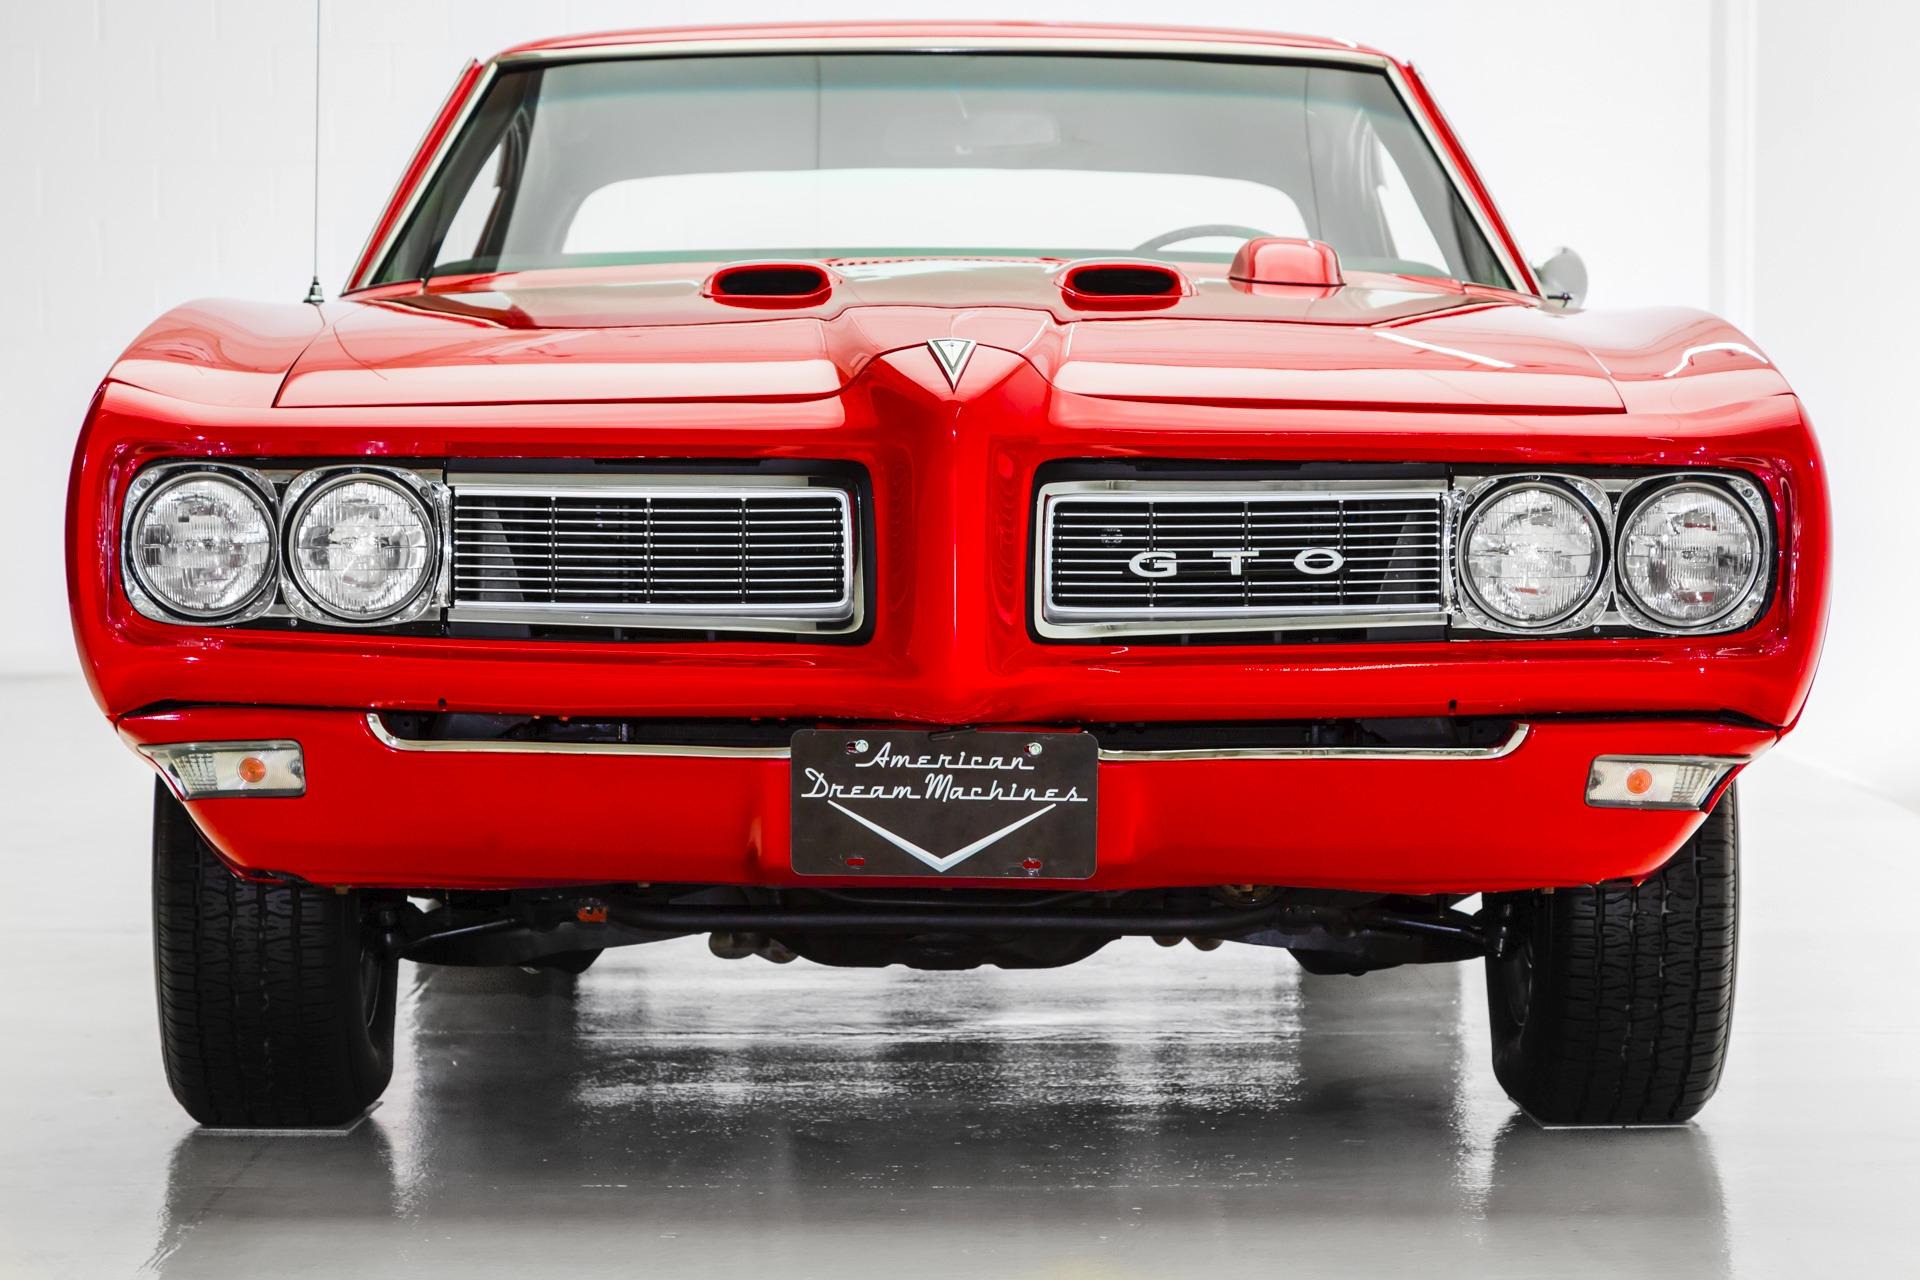 For Sale Used 1968 Pontiac GTO 455 4 Speed  PHS | American Dream Machines Des Moines IA 50309